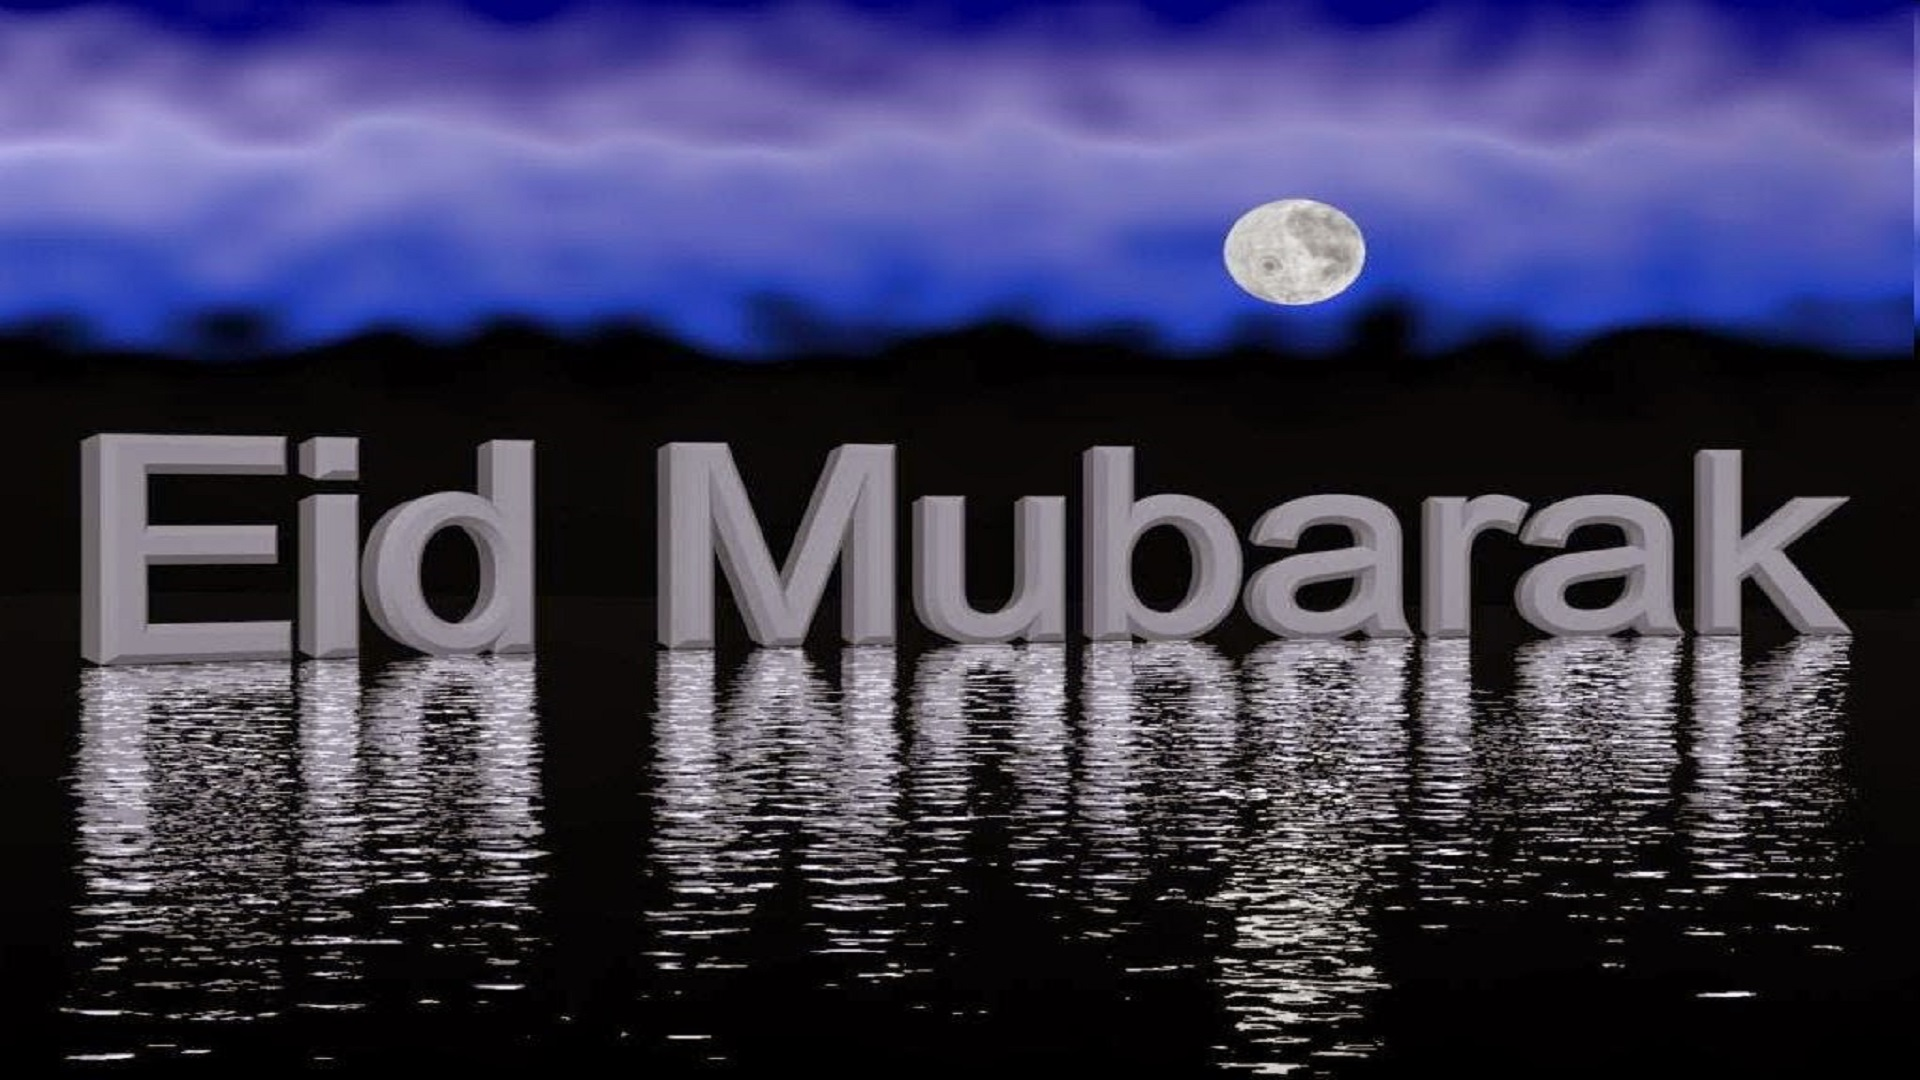 Eid Mubarak Moon Image Wallpapers Free Hd